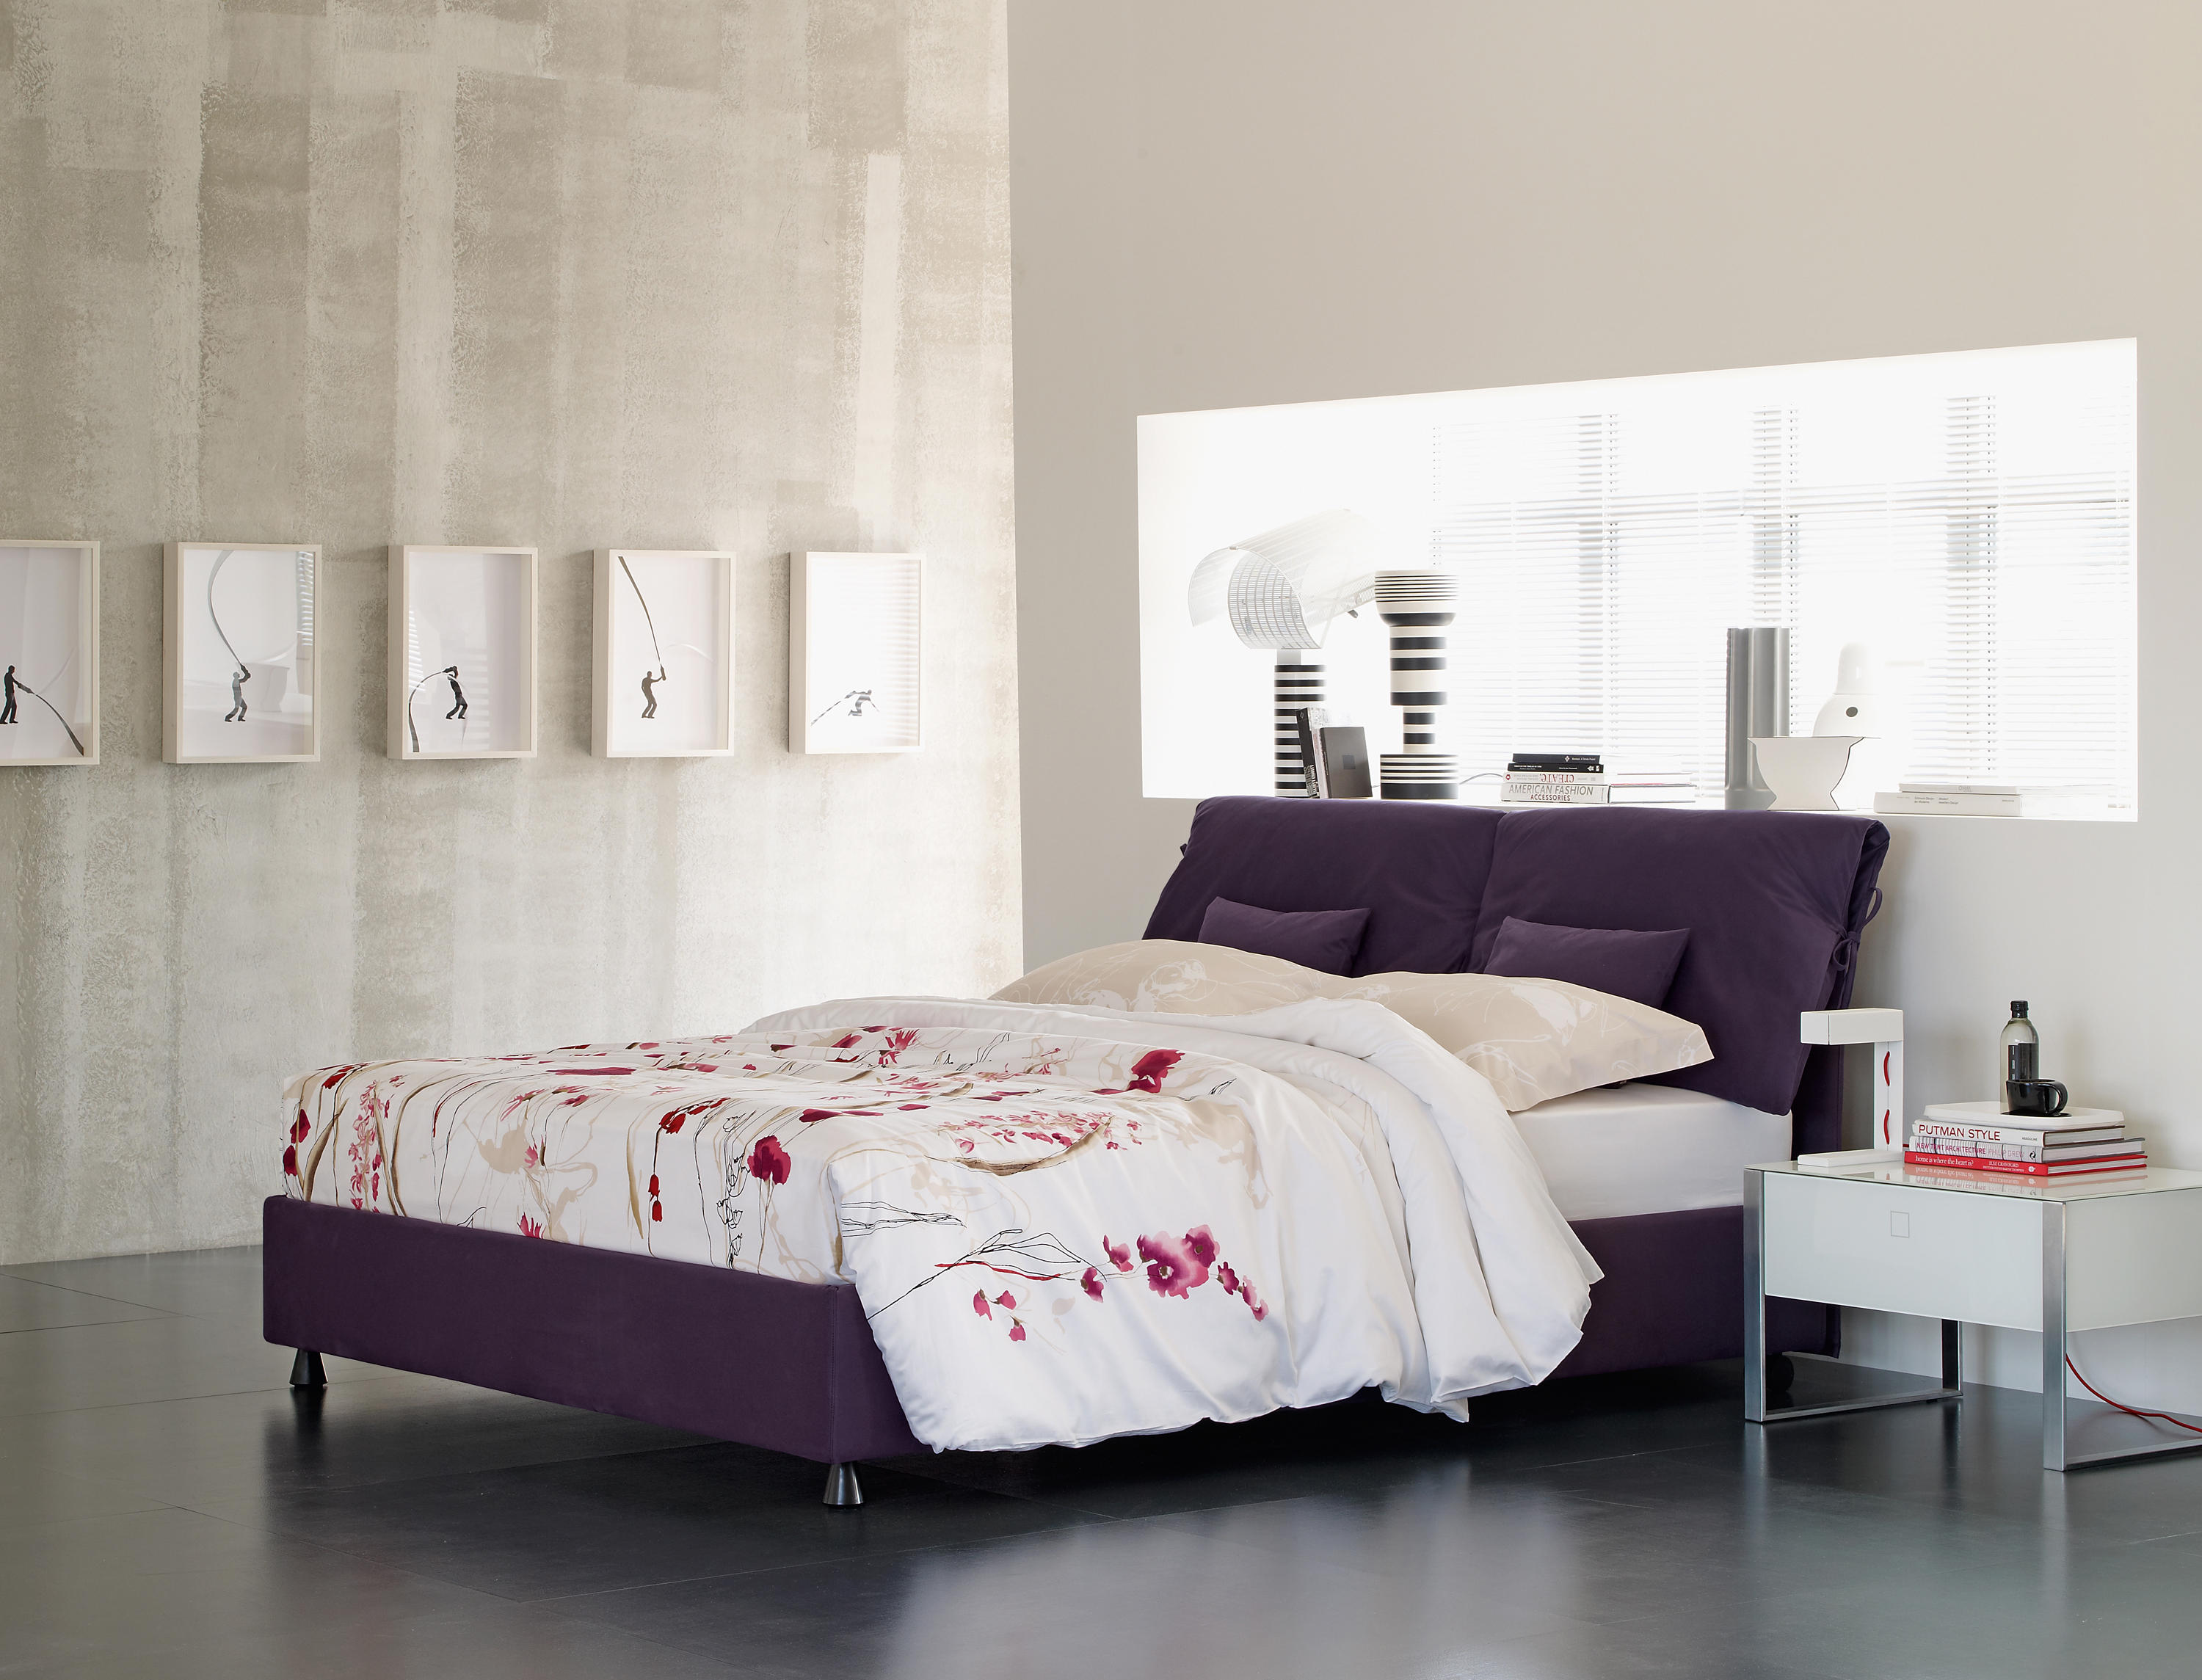 Nathalie bed beds from flou architonic for Nadalini arredamenti